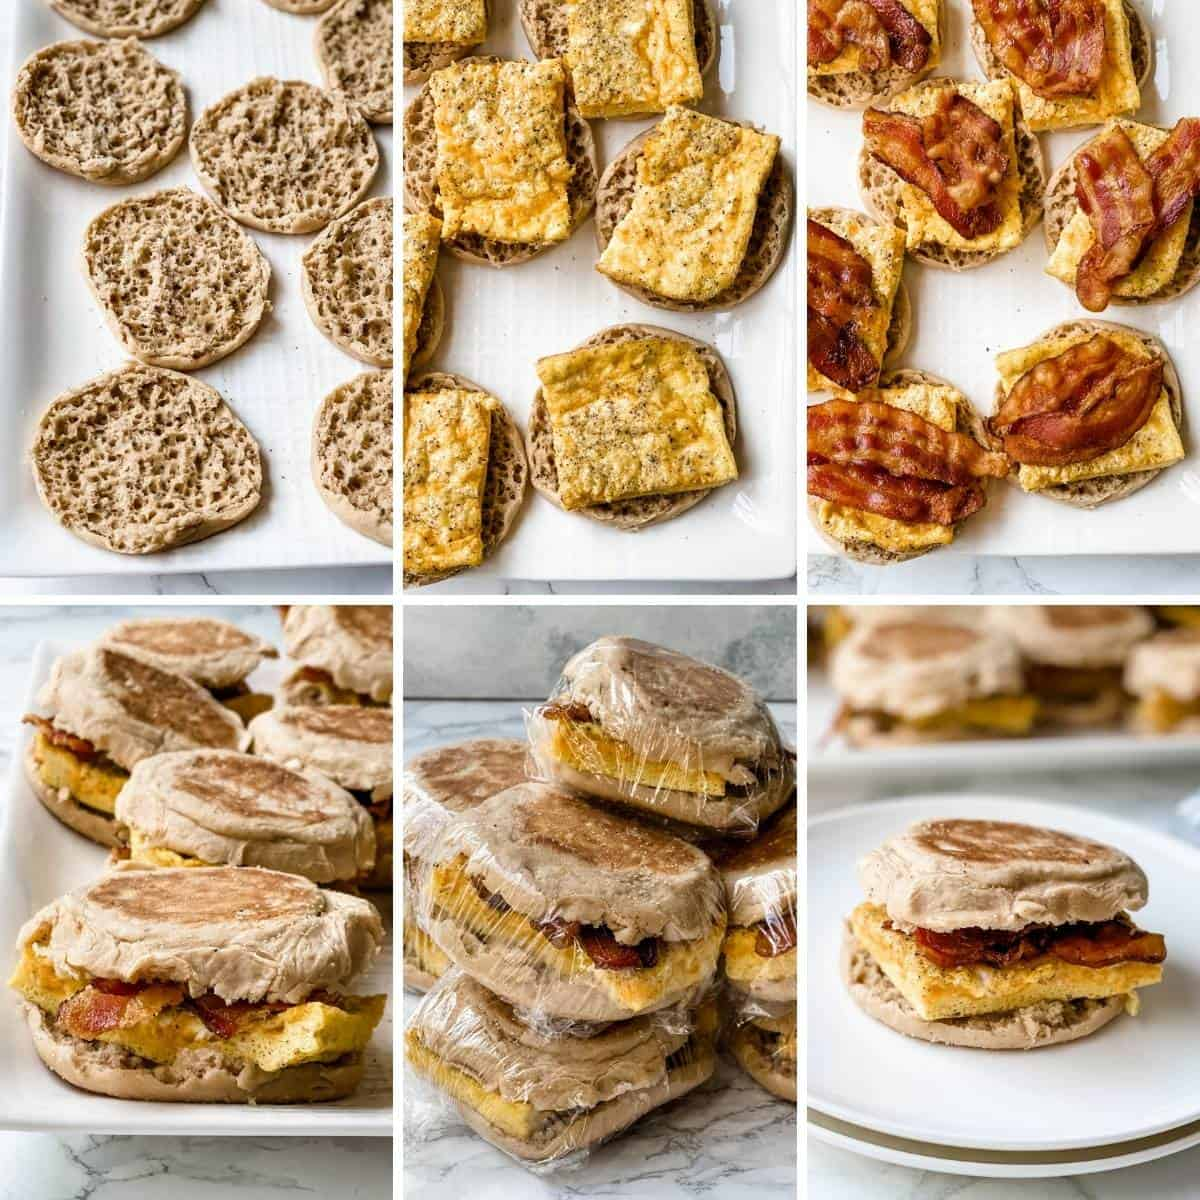 A collage showing the last steps for assembling the breakfast sandwiches for the freezer.